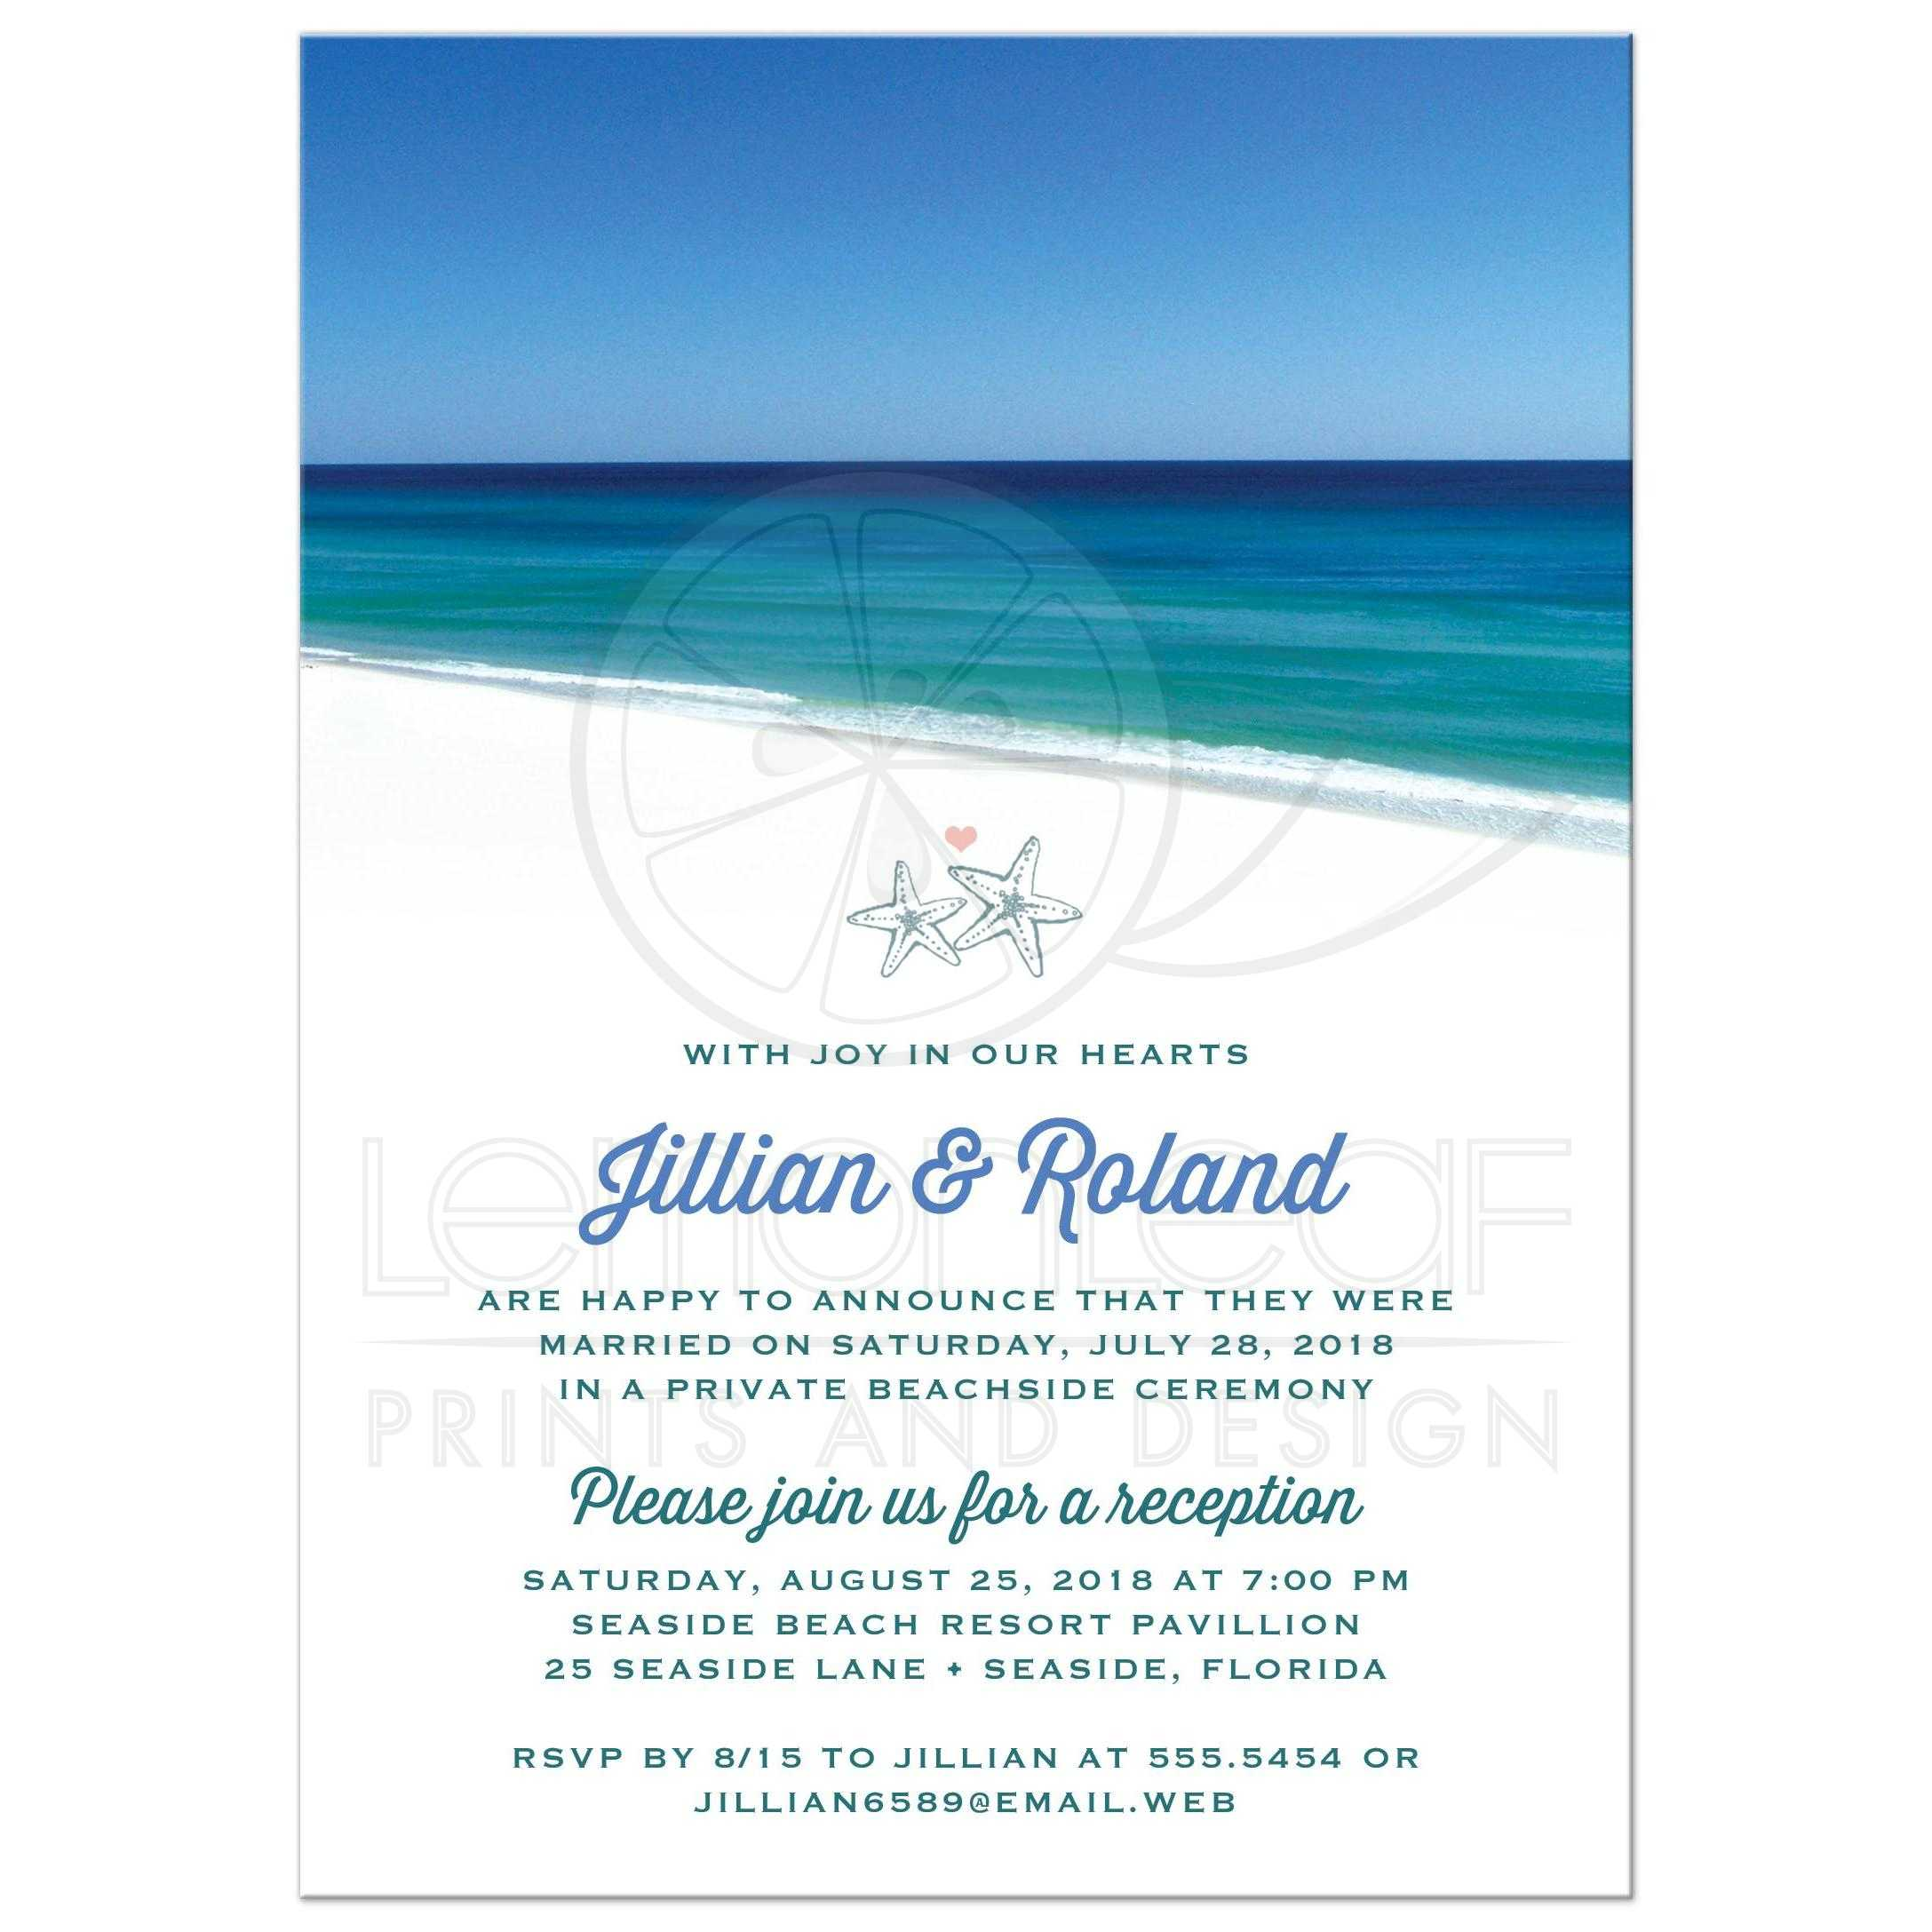 Post Wedding Reception Only Invitations Beautiful Beach Scene